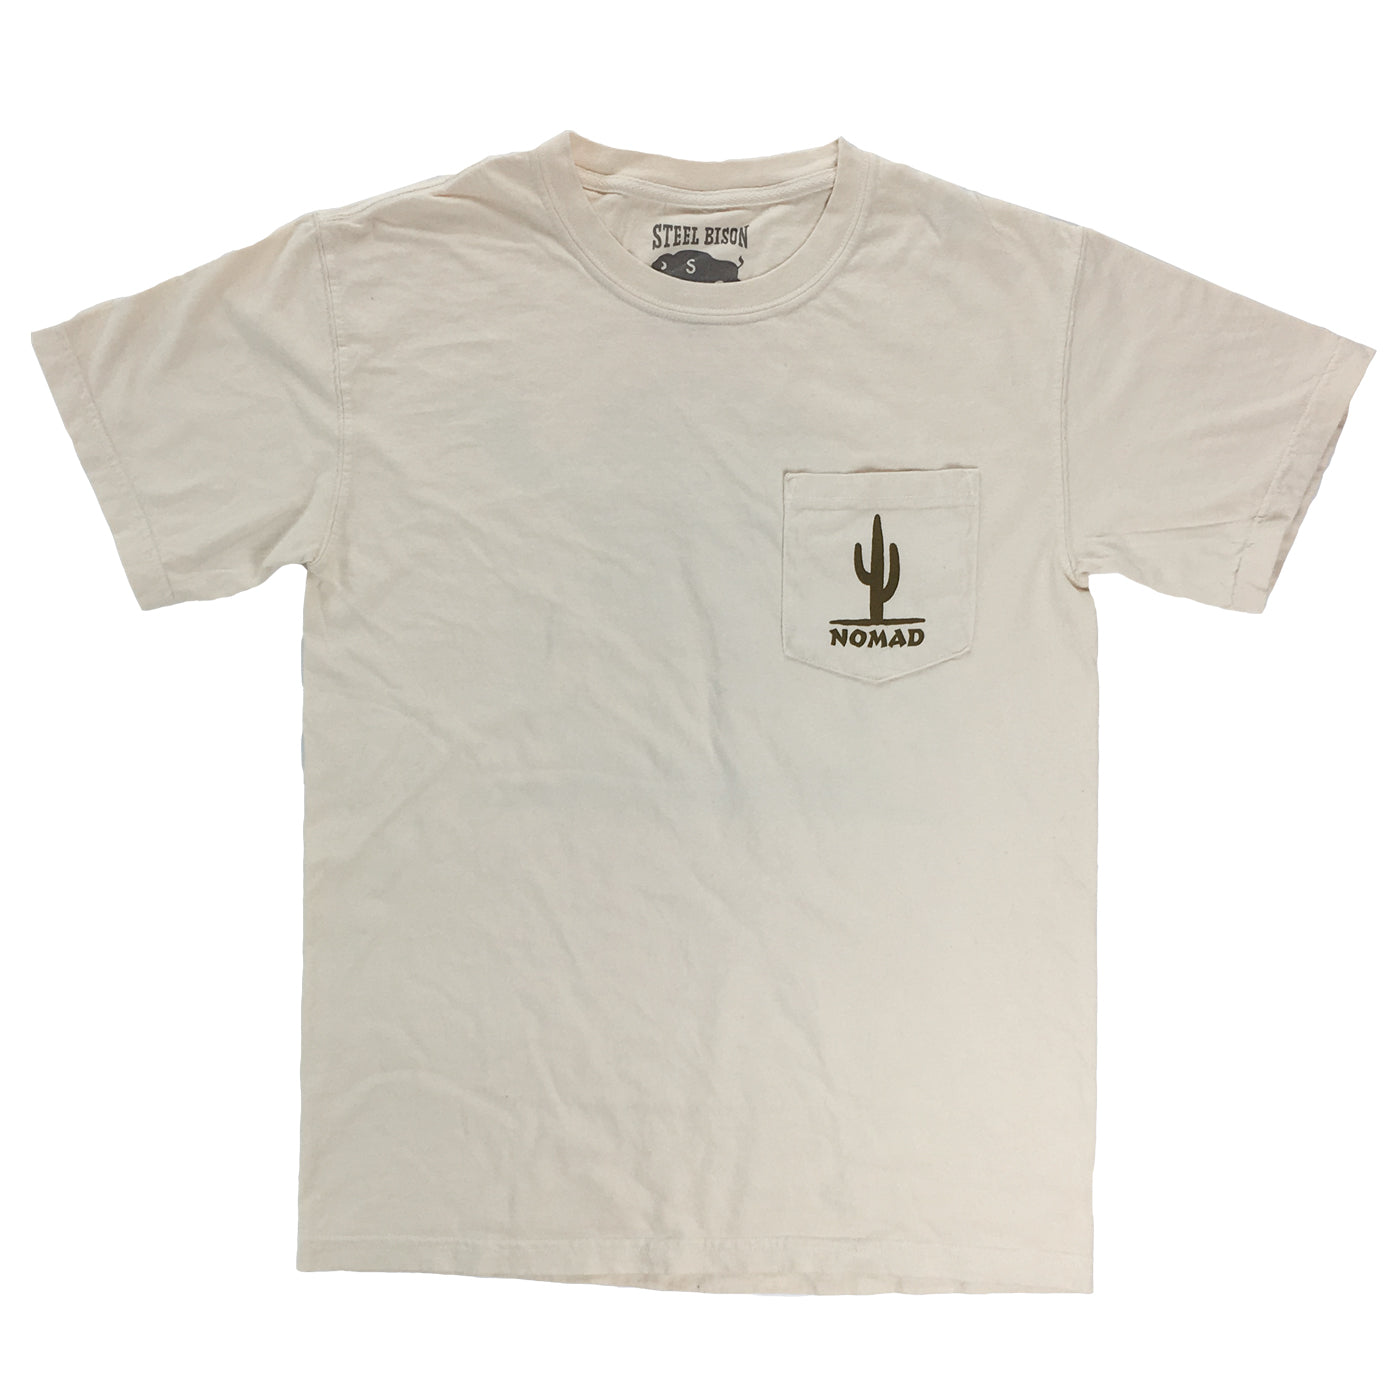 Desert Nomad - Heavy Cotton Pocket T-shirt (Ivory)